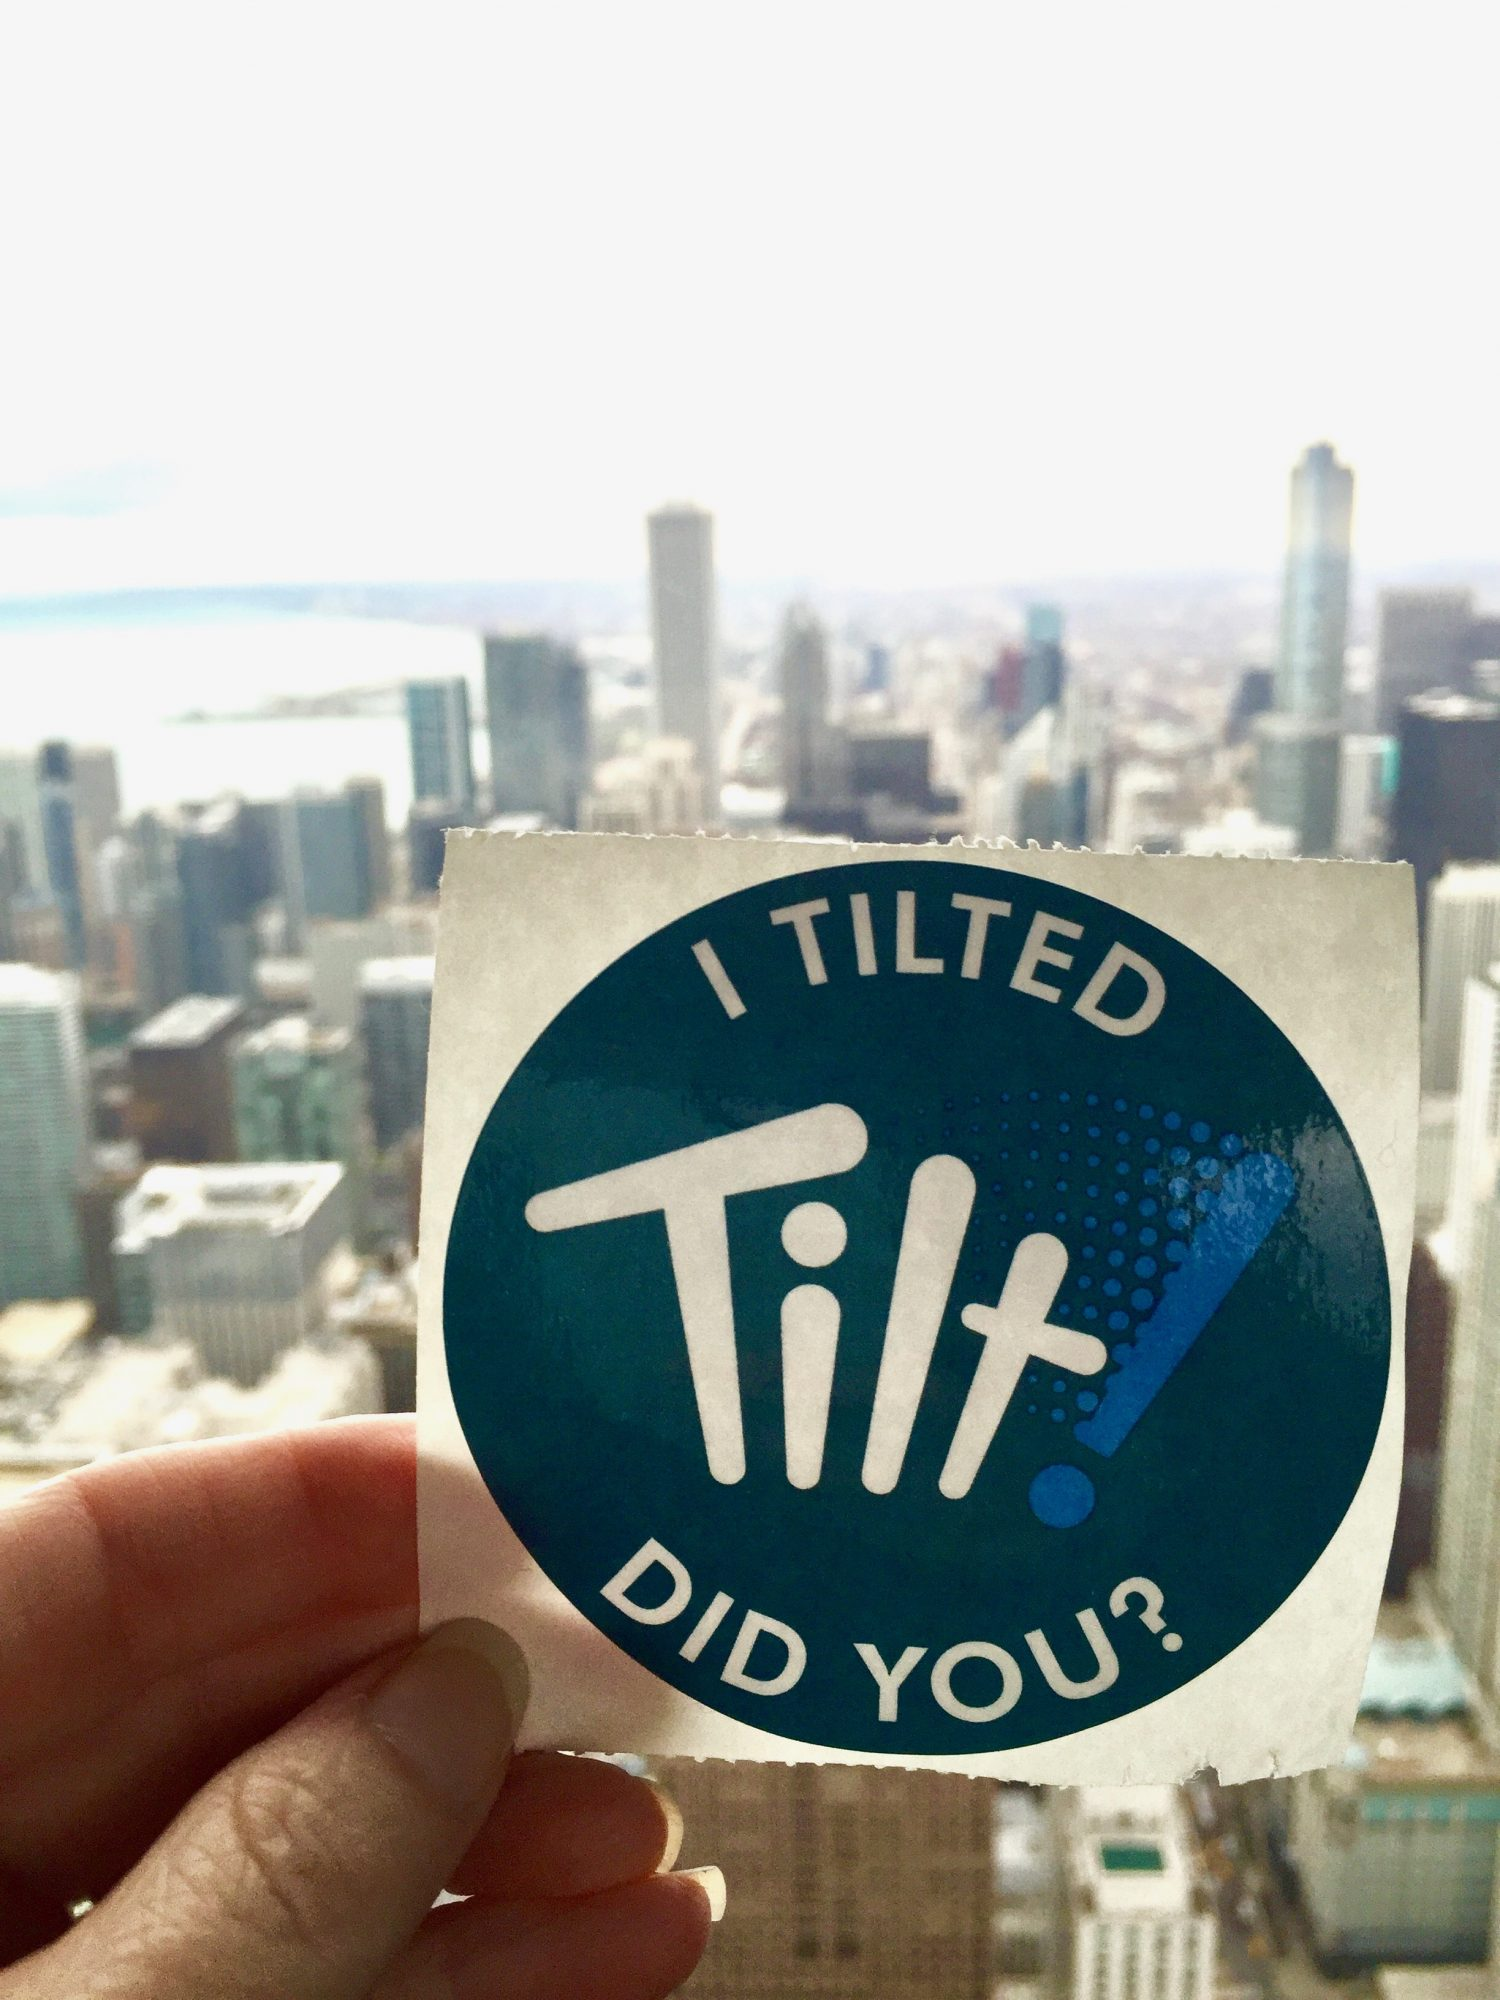 I Must Have Been Out of My Mind, I Tilted Off the 94th Floor